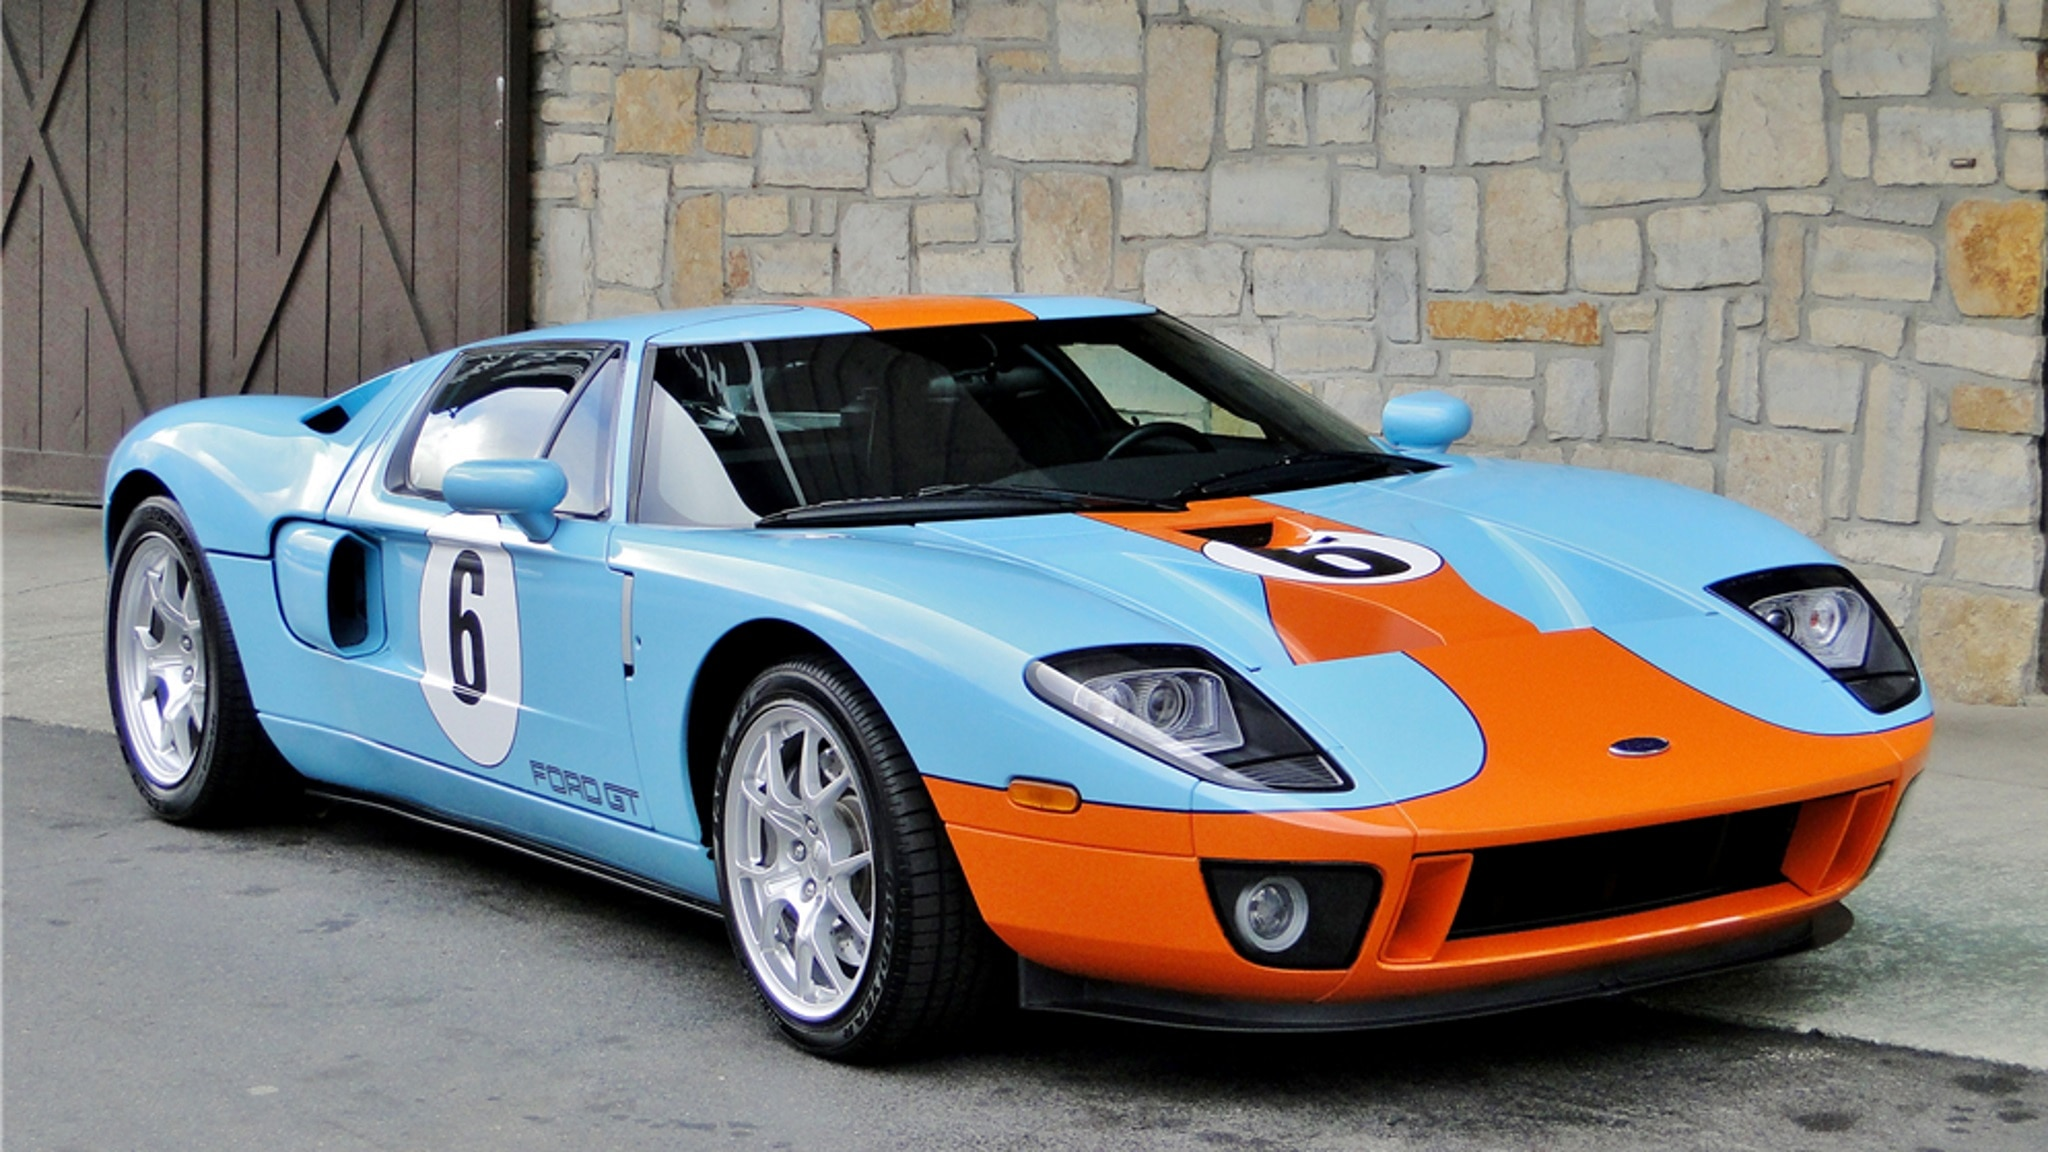 If You Prefer Closed Ford Gts There Are Plenty To Choose From If Youre A Fan Of The Heritage Edition Cars Done Up In The Blue And Orange Gulf Inspired